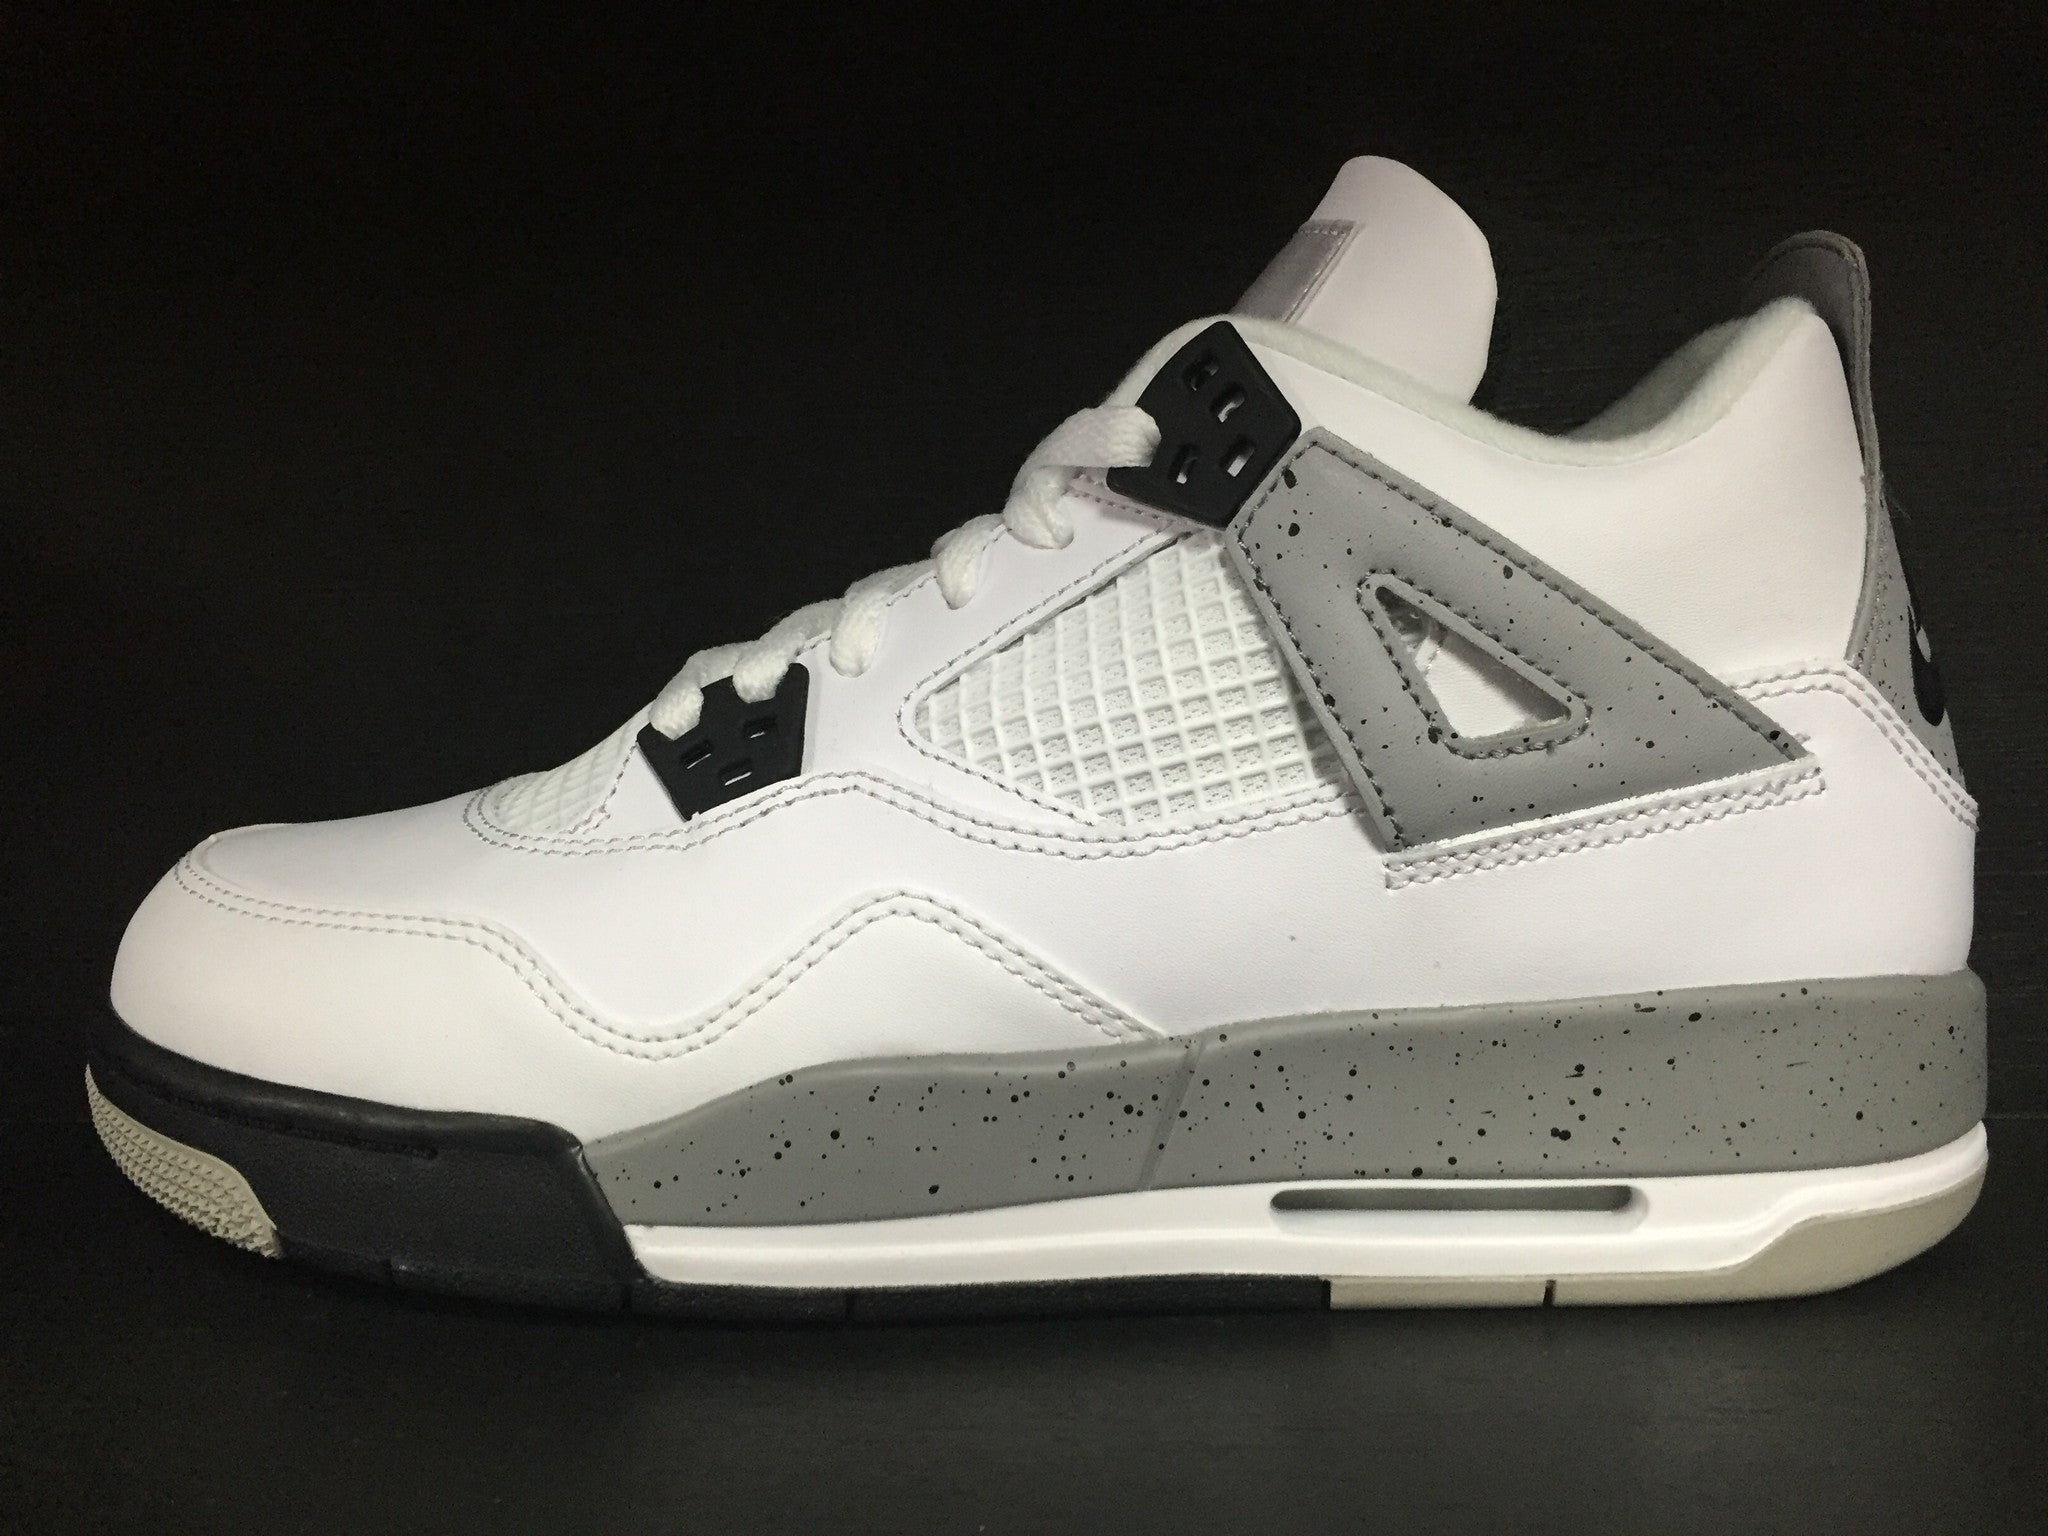 Air Jordan 4 Retro OG 'White Cement' GS